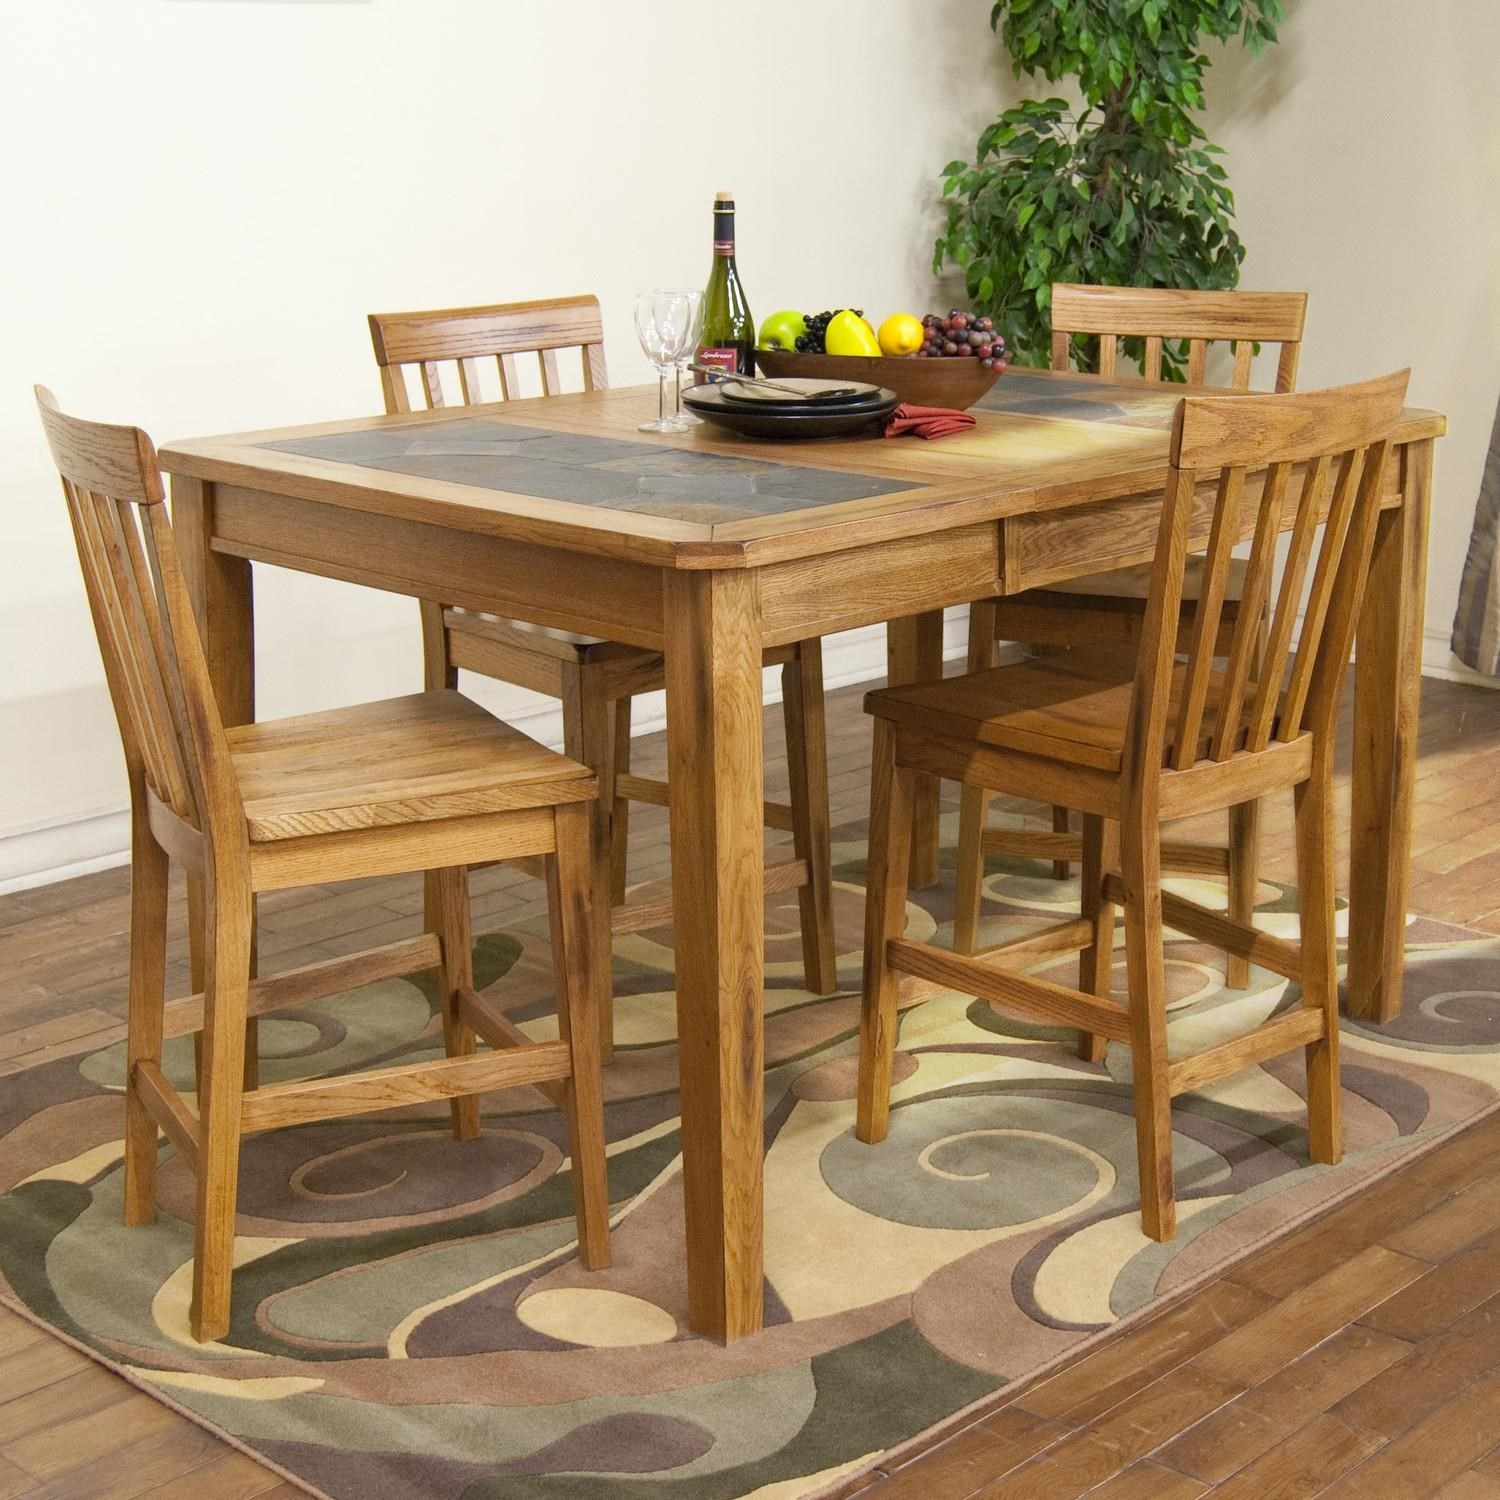 Sunny Designs Sedona Counter Height Extension Table W/ Slate Top U0026 Stool  Set. Sedona Collection